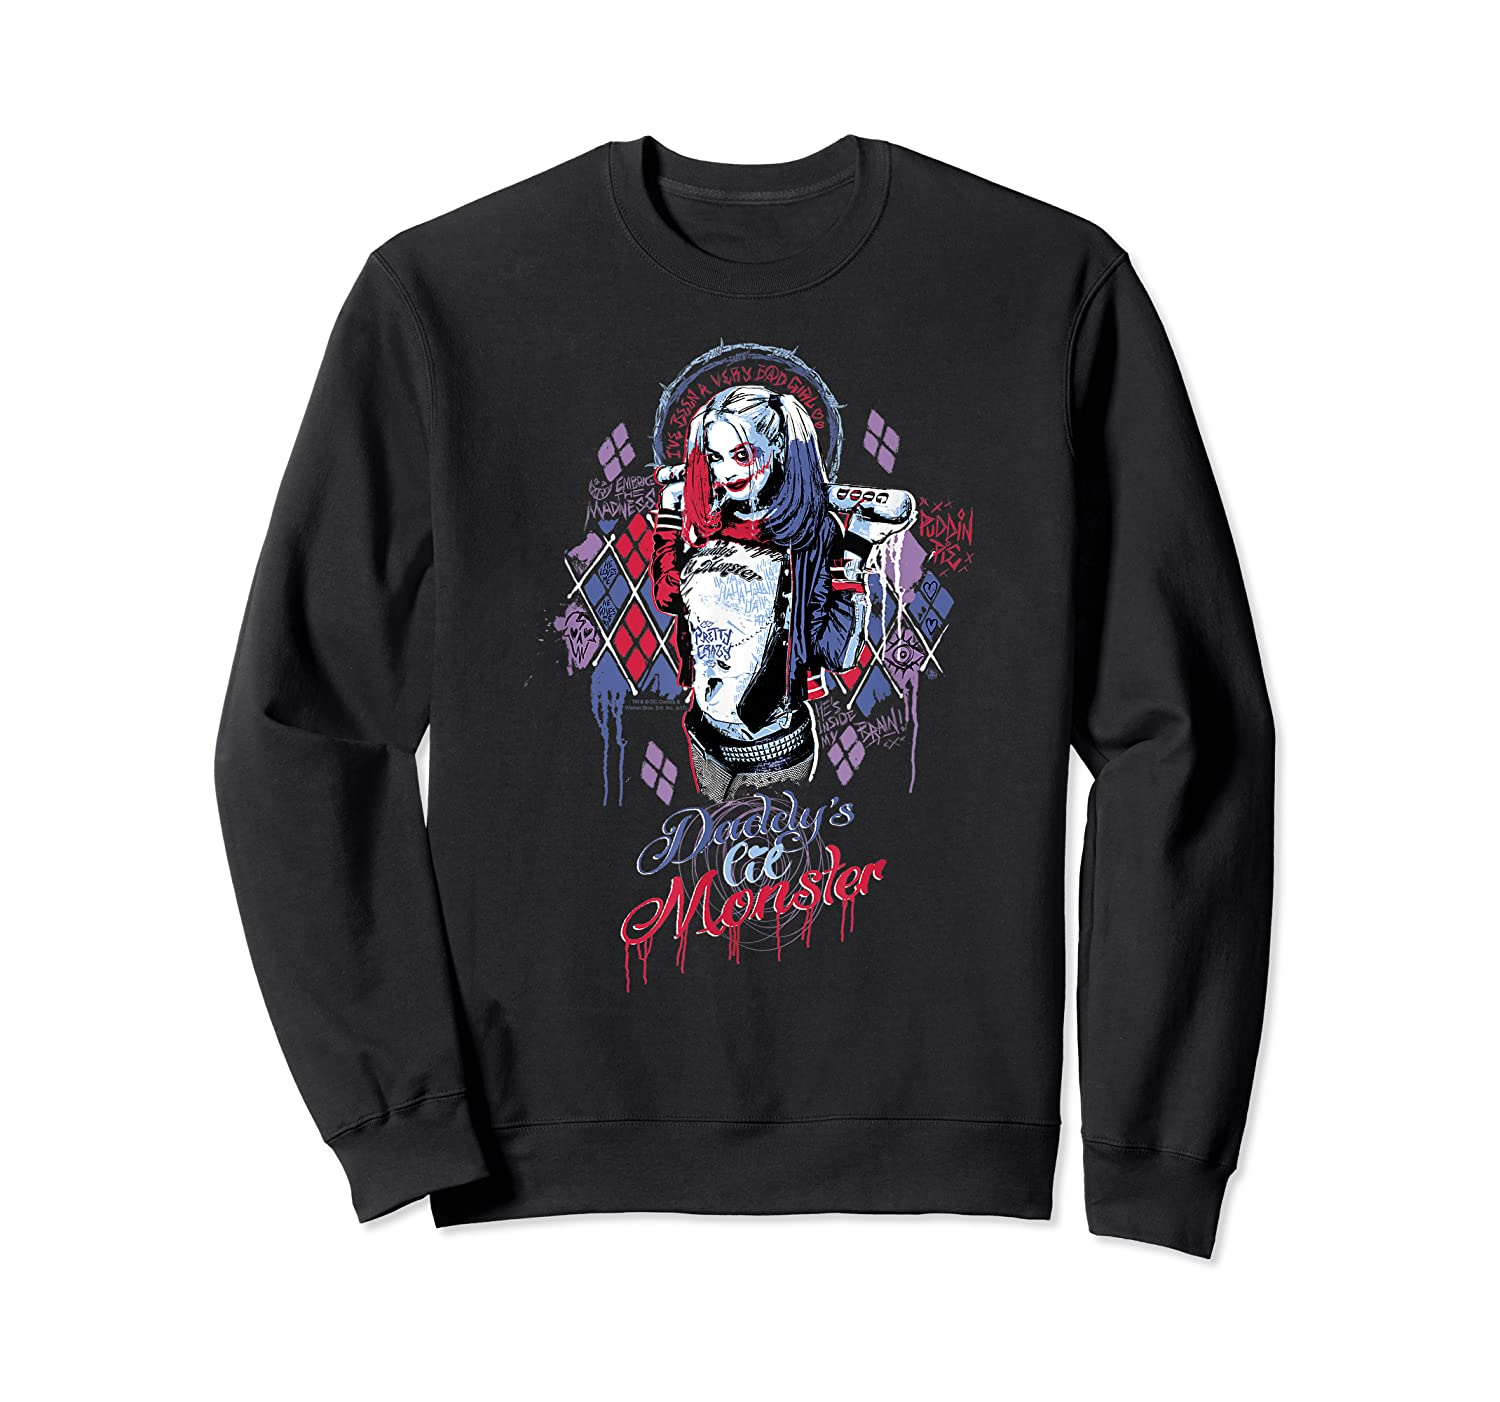 Suicide Squad Harley Quinn Bad Girl Shirts Crewneck Sweater